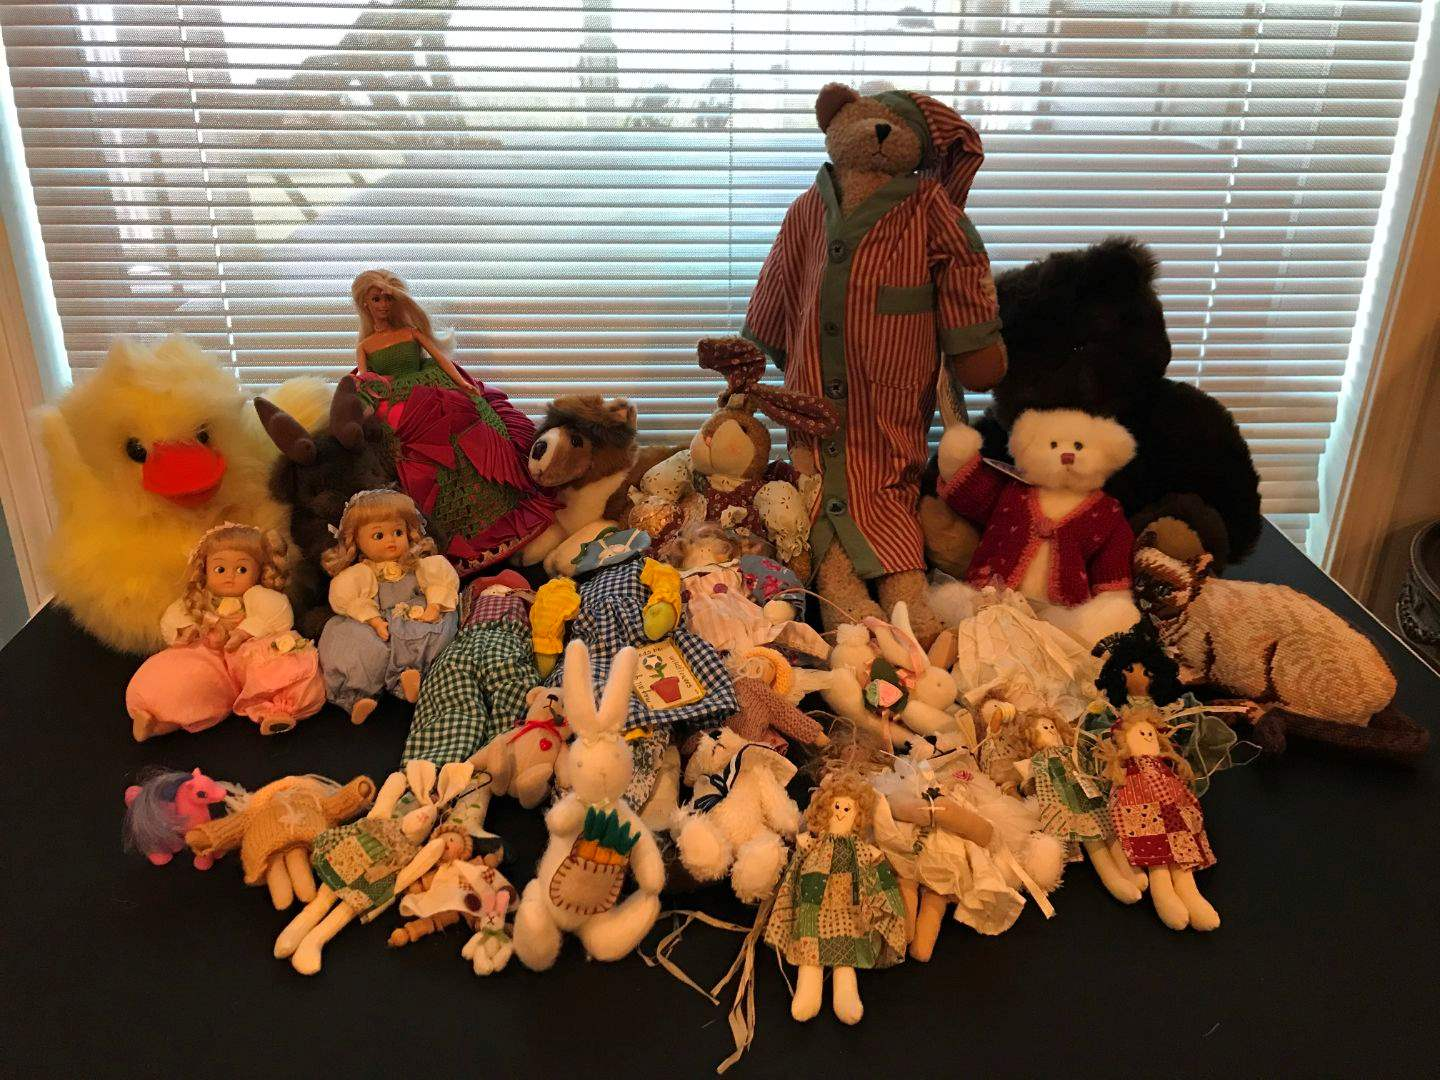 Lot # 232 - Stuffed Animals, Barbie & 2 Porcelain Baby Dolls (main image)